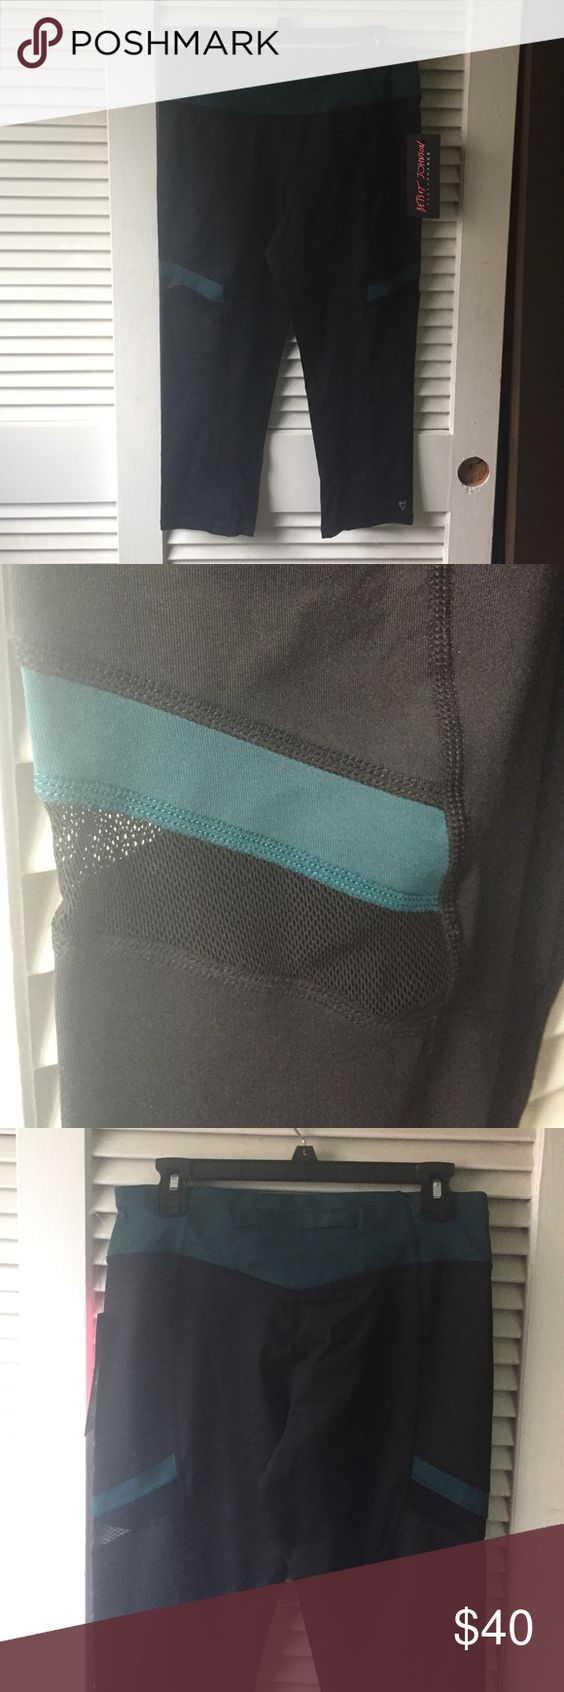 """Betsey Johnson performance pants Betsey Johnson performance workout pants. Capri length with mesh side piece on both outer thighs and on the lower inner bottom of pants. Black Teal (green) color with wide waist band and small back rear zipped pocket at center of back. Stretch fabric. Approx measurements length 29"""" waist without stretching 15.5"""" Betsey Johnson Pants Ankle & Cropped"""